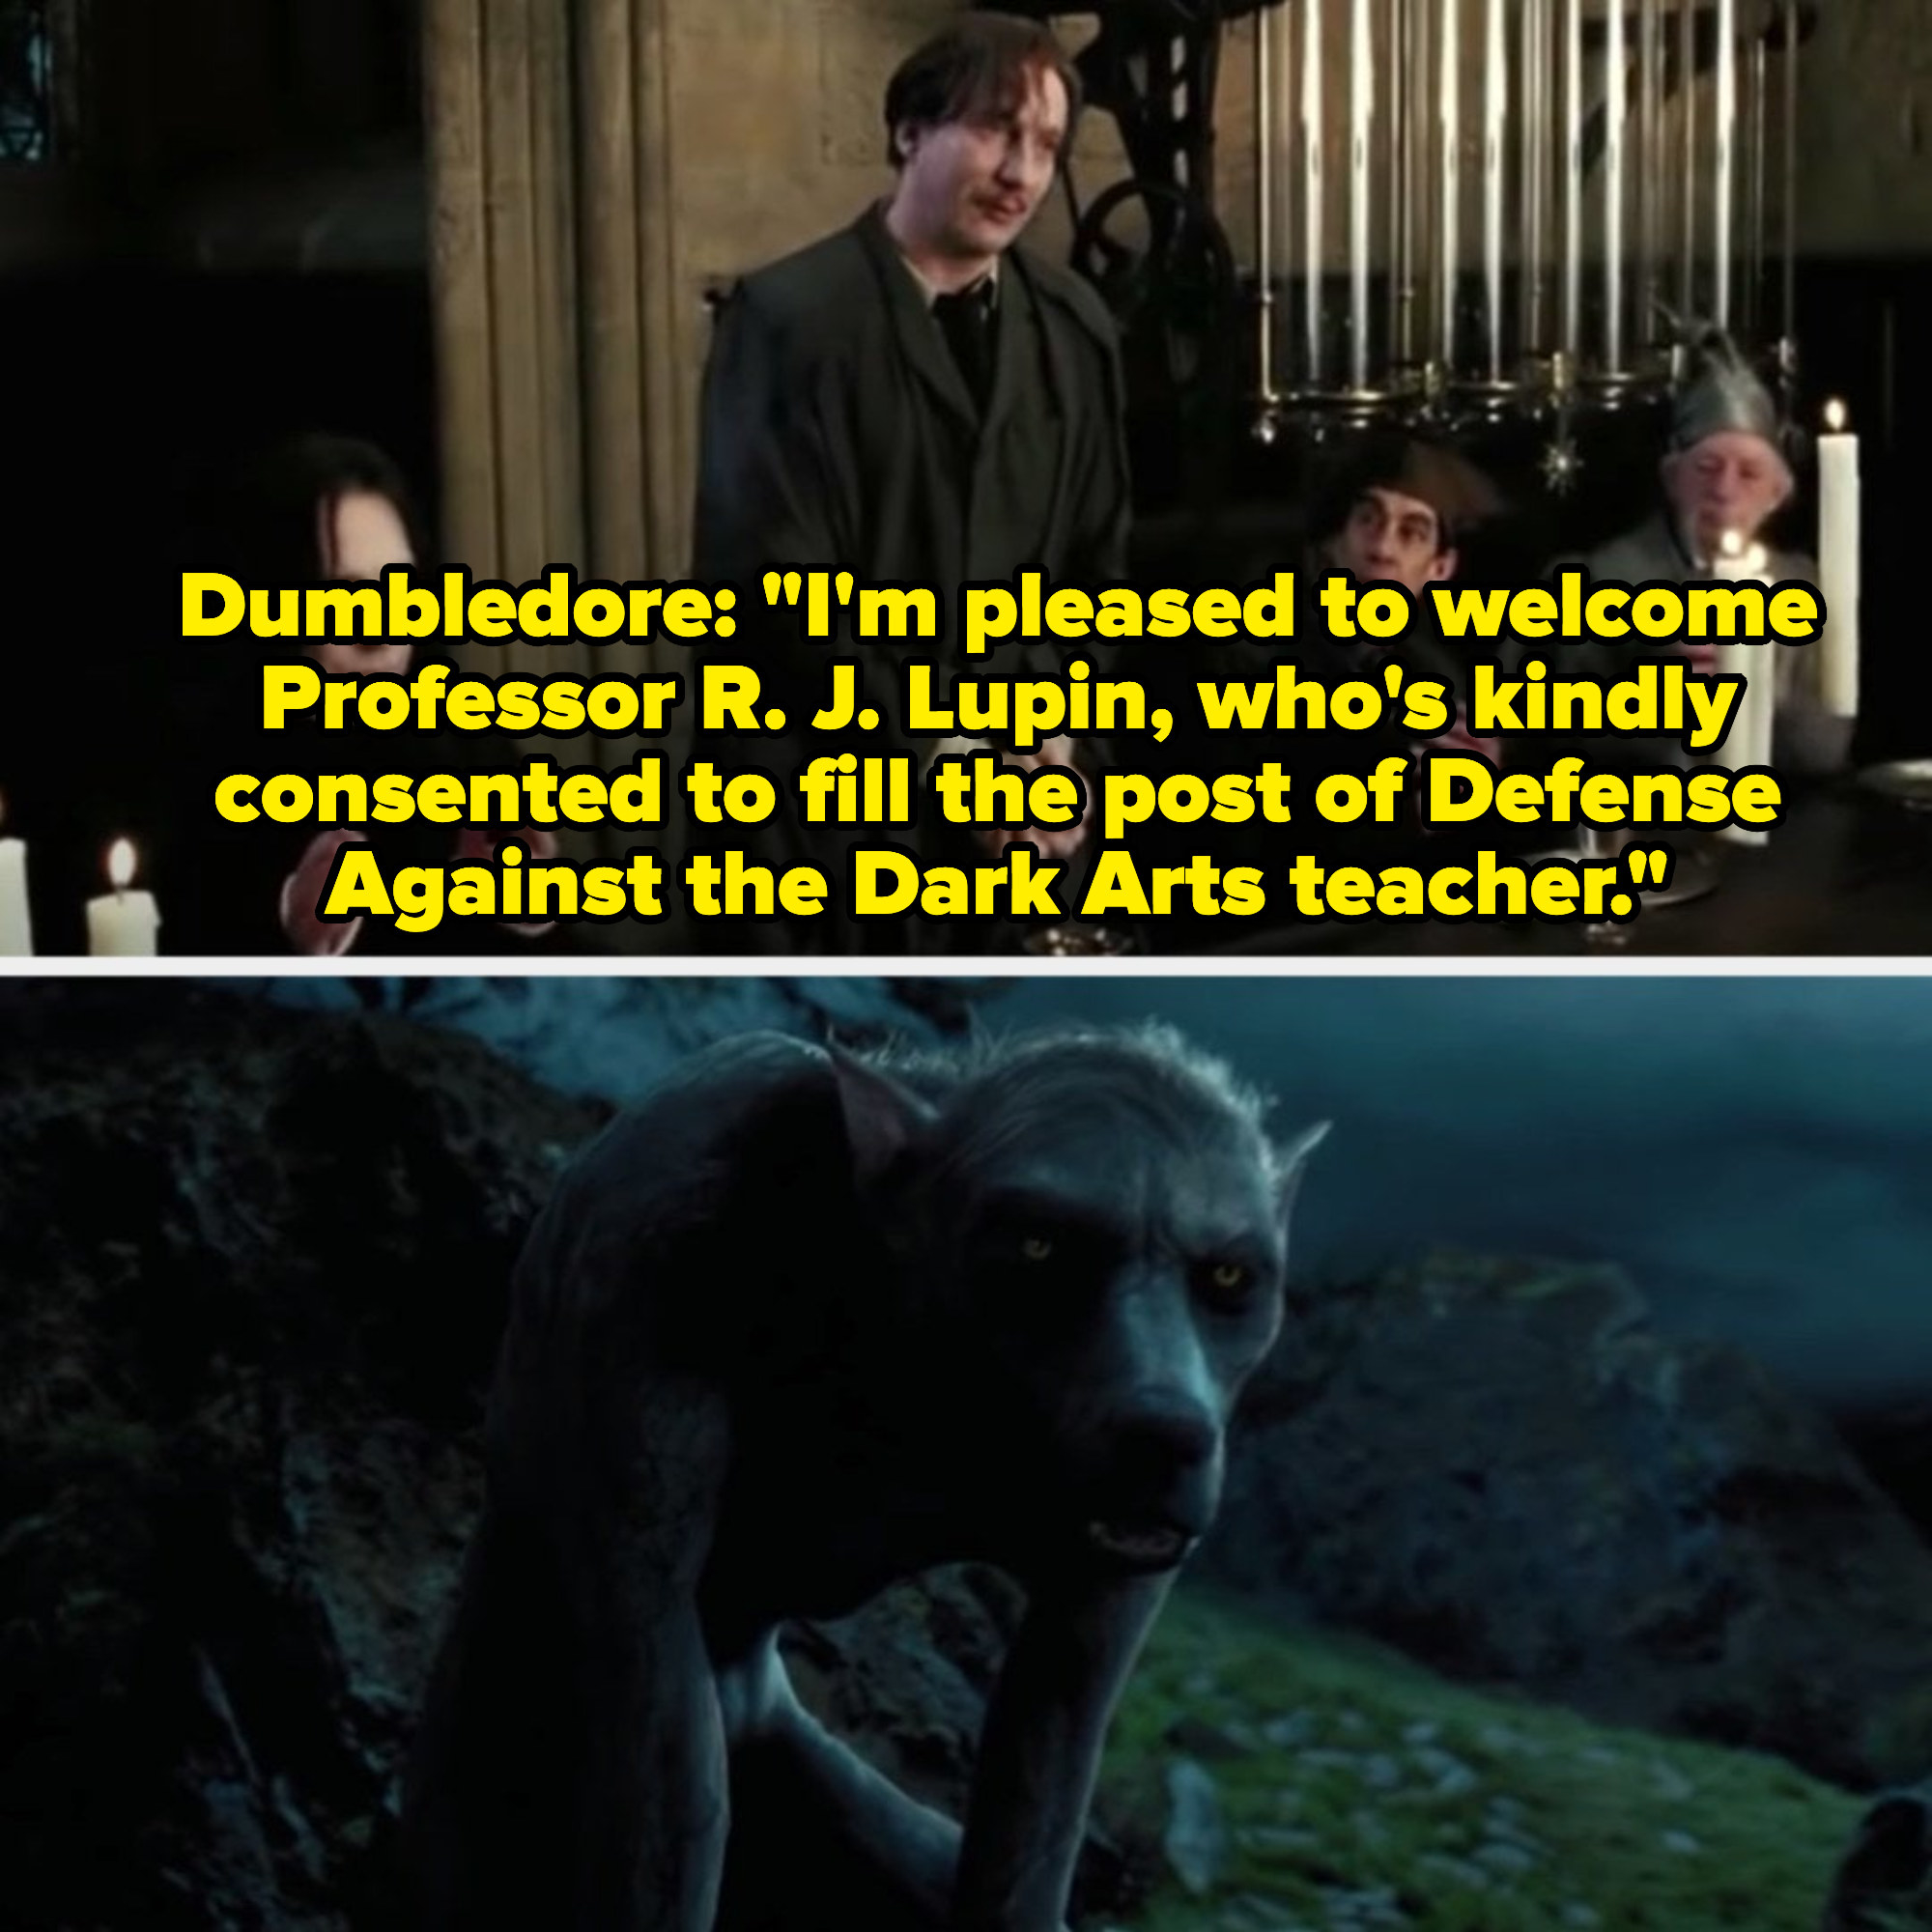 Dumbledore introducing Remus Lupin at Hogwarts; Lupin as a werewolf at the end of the movie